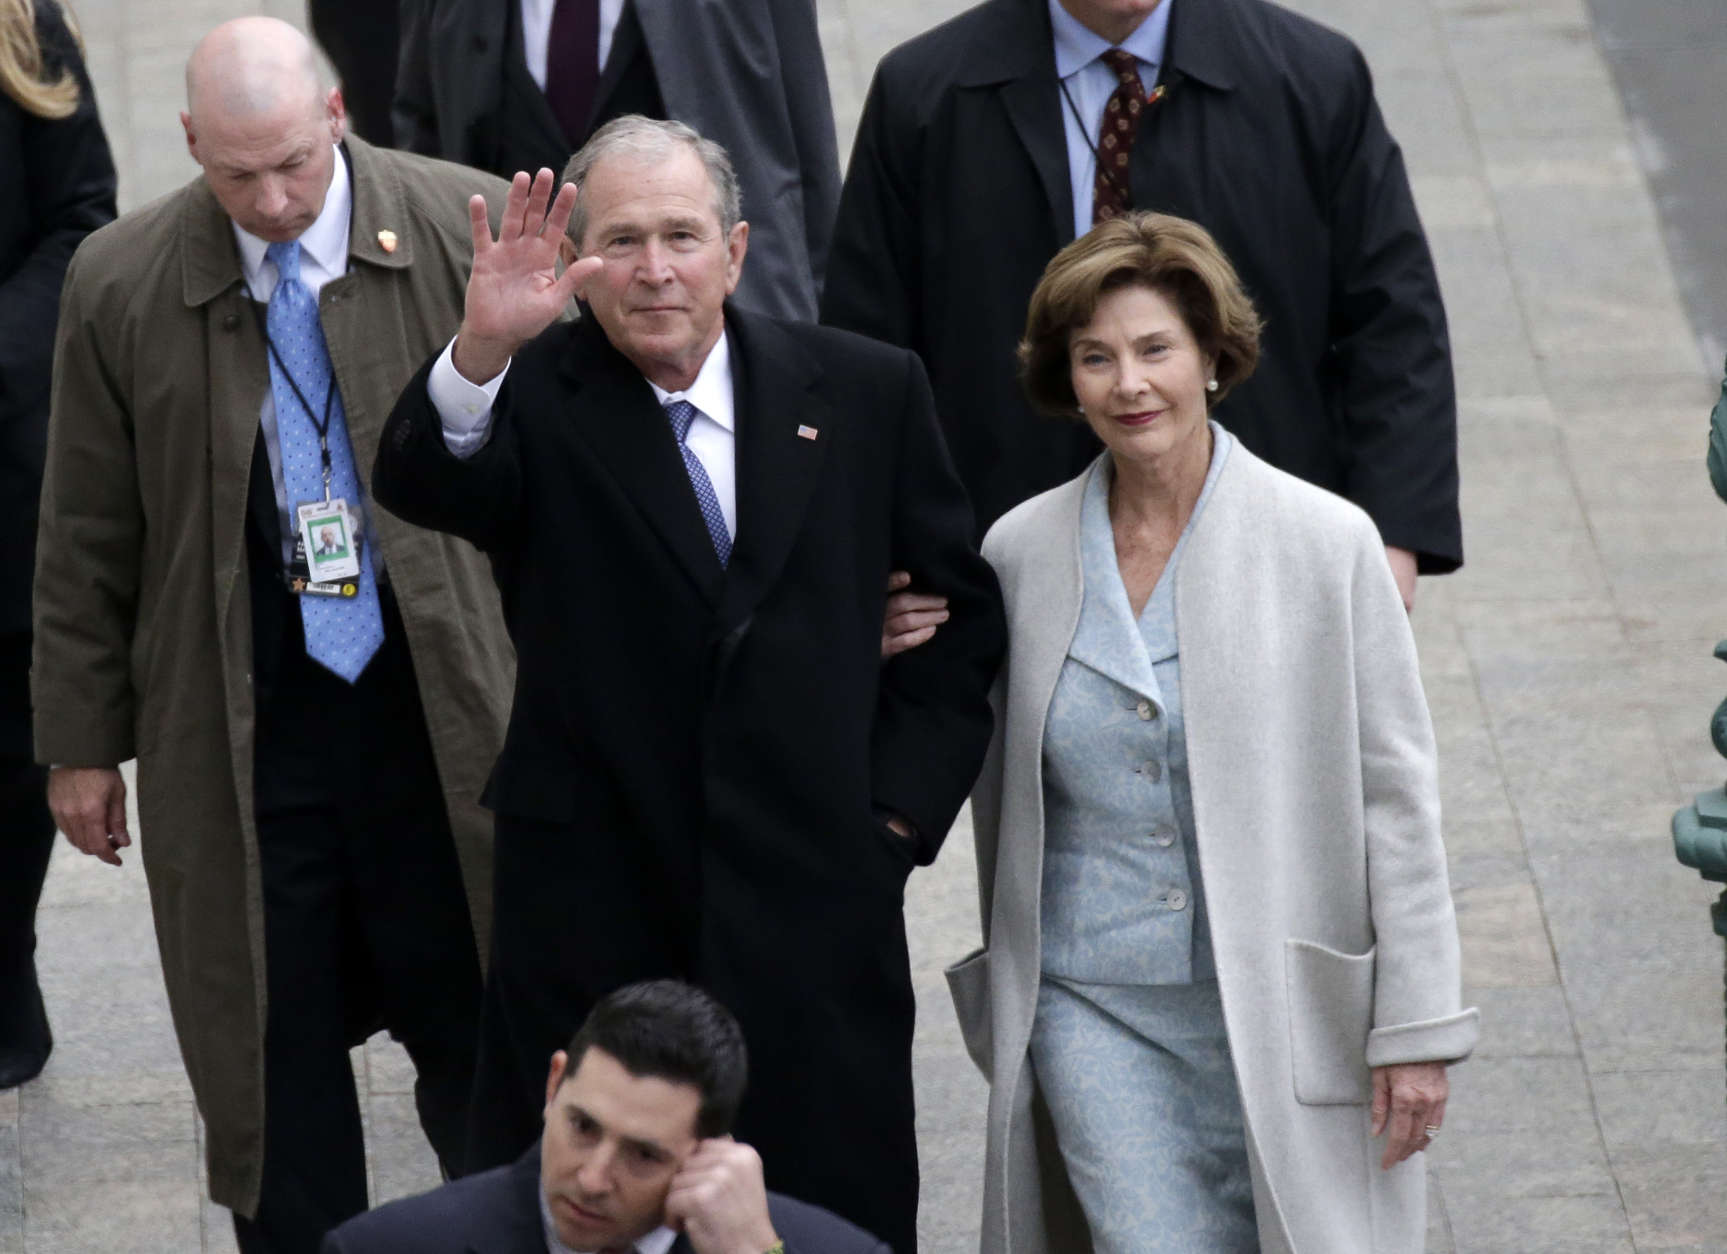 WASHINGTON, DC - JANUARY 20:  Former U.S. President of the United States George W. Bush and wife Laura Bush arrive near the east front steps of the Capitol Building before President-elect Donald Trump is sworn in at the 58th Presidential Inauguration on Capitol Hill on January 20, 2017 in Washington, D.C. In today's inauguration ceremony Donald J. Trump becomes the 45th president of the United States.  (Photo by John Angelillo-Pool/Getty Images)